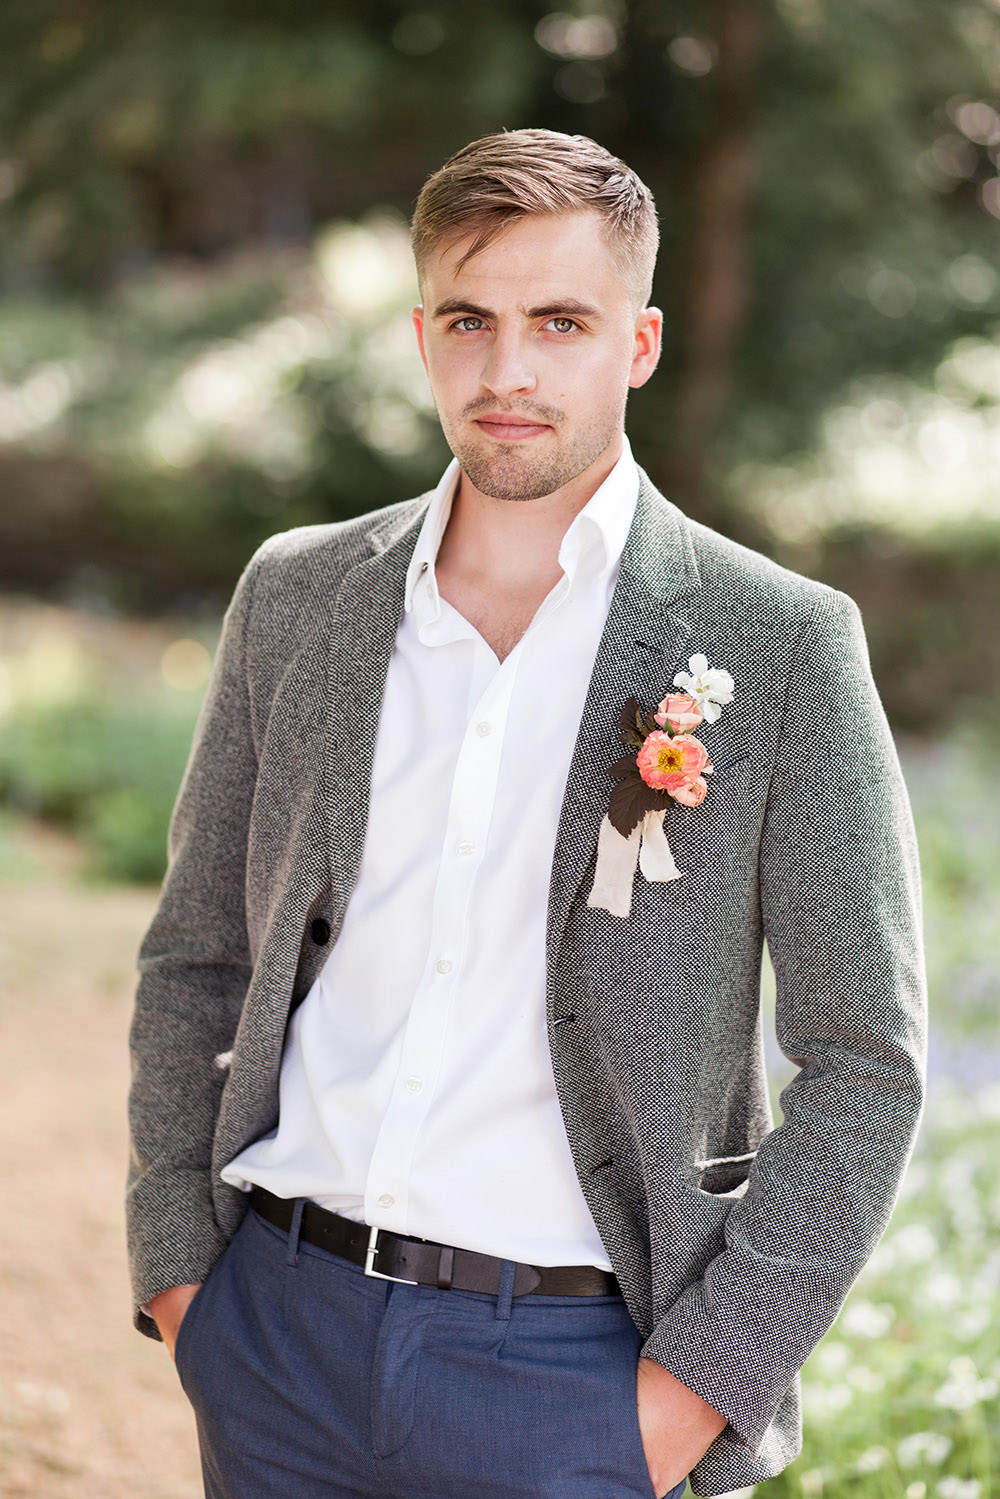 Groom Suit Grey Open Collar Shirt Coral Buttonhole Light Airy Summer Wedding Ideas Charlotte Palazzo Photography